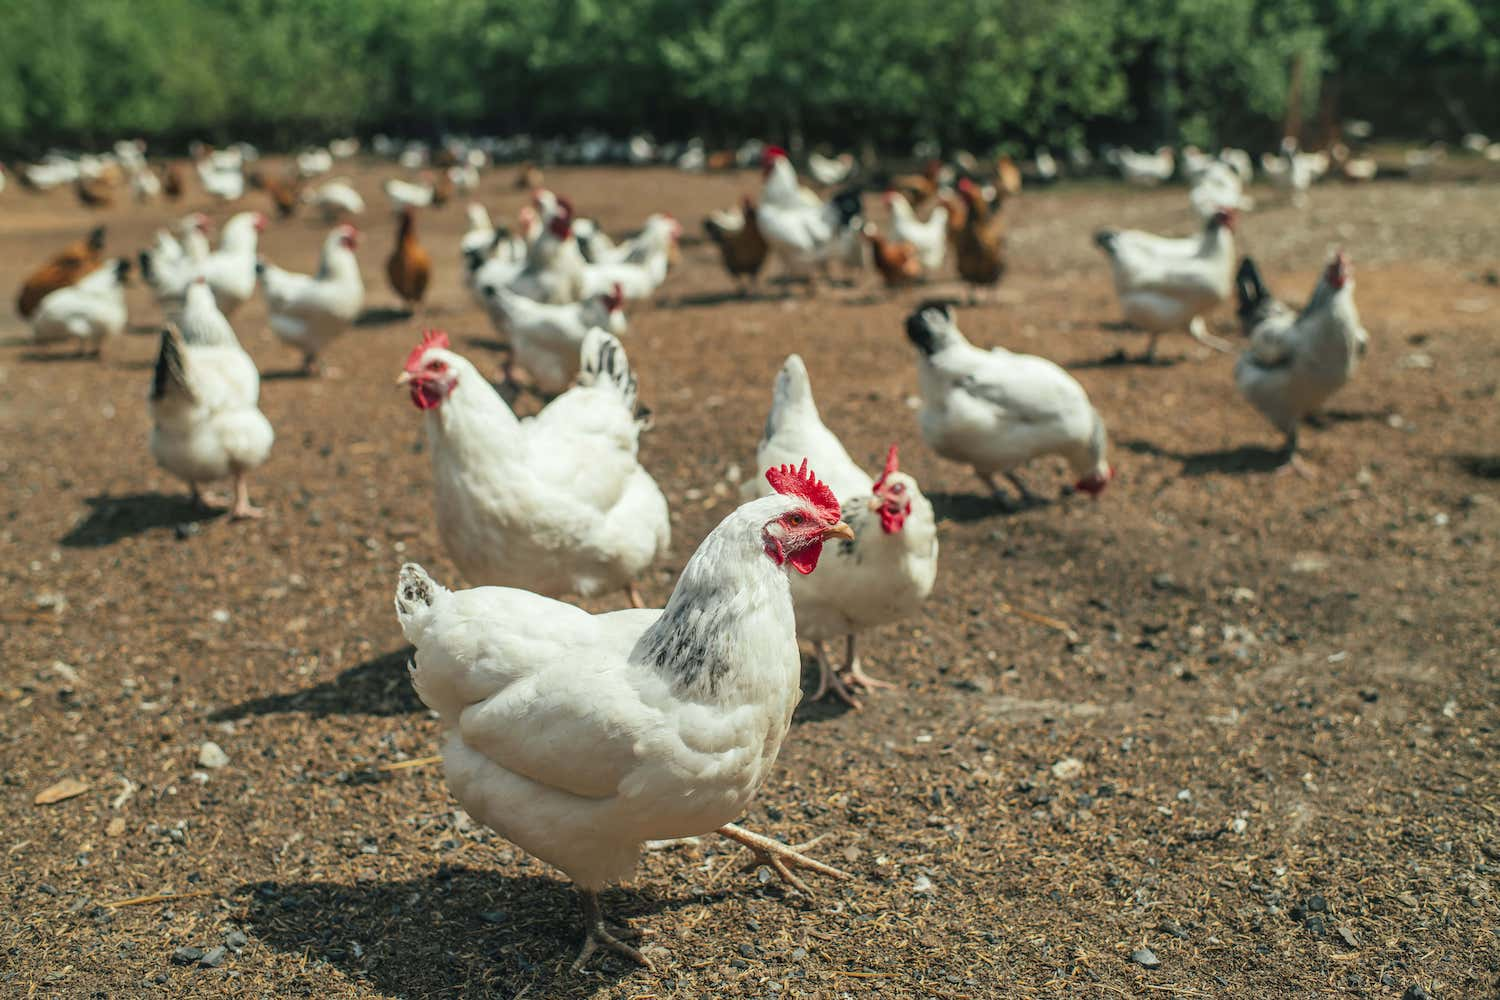 Group of white chickens on a poultry far. (May 2020)